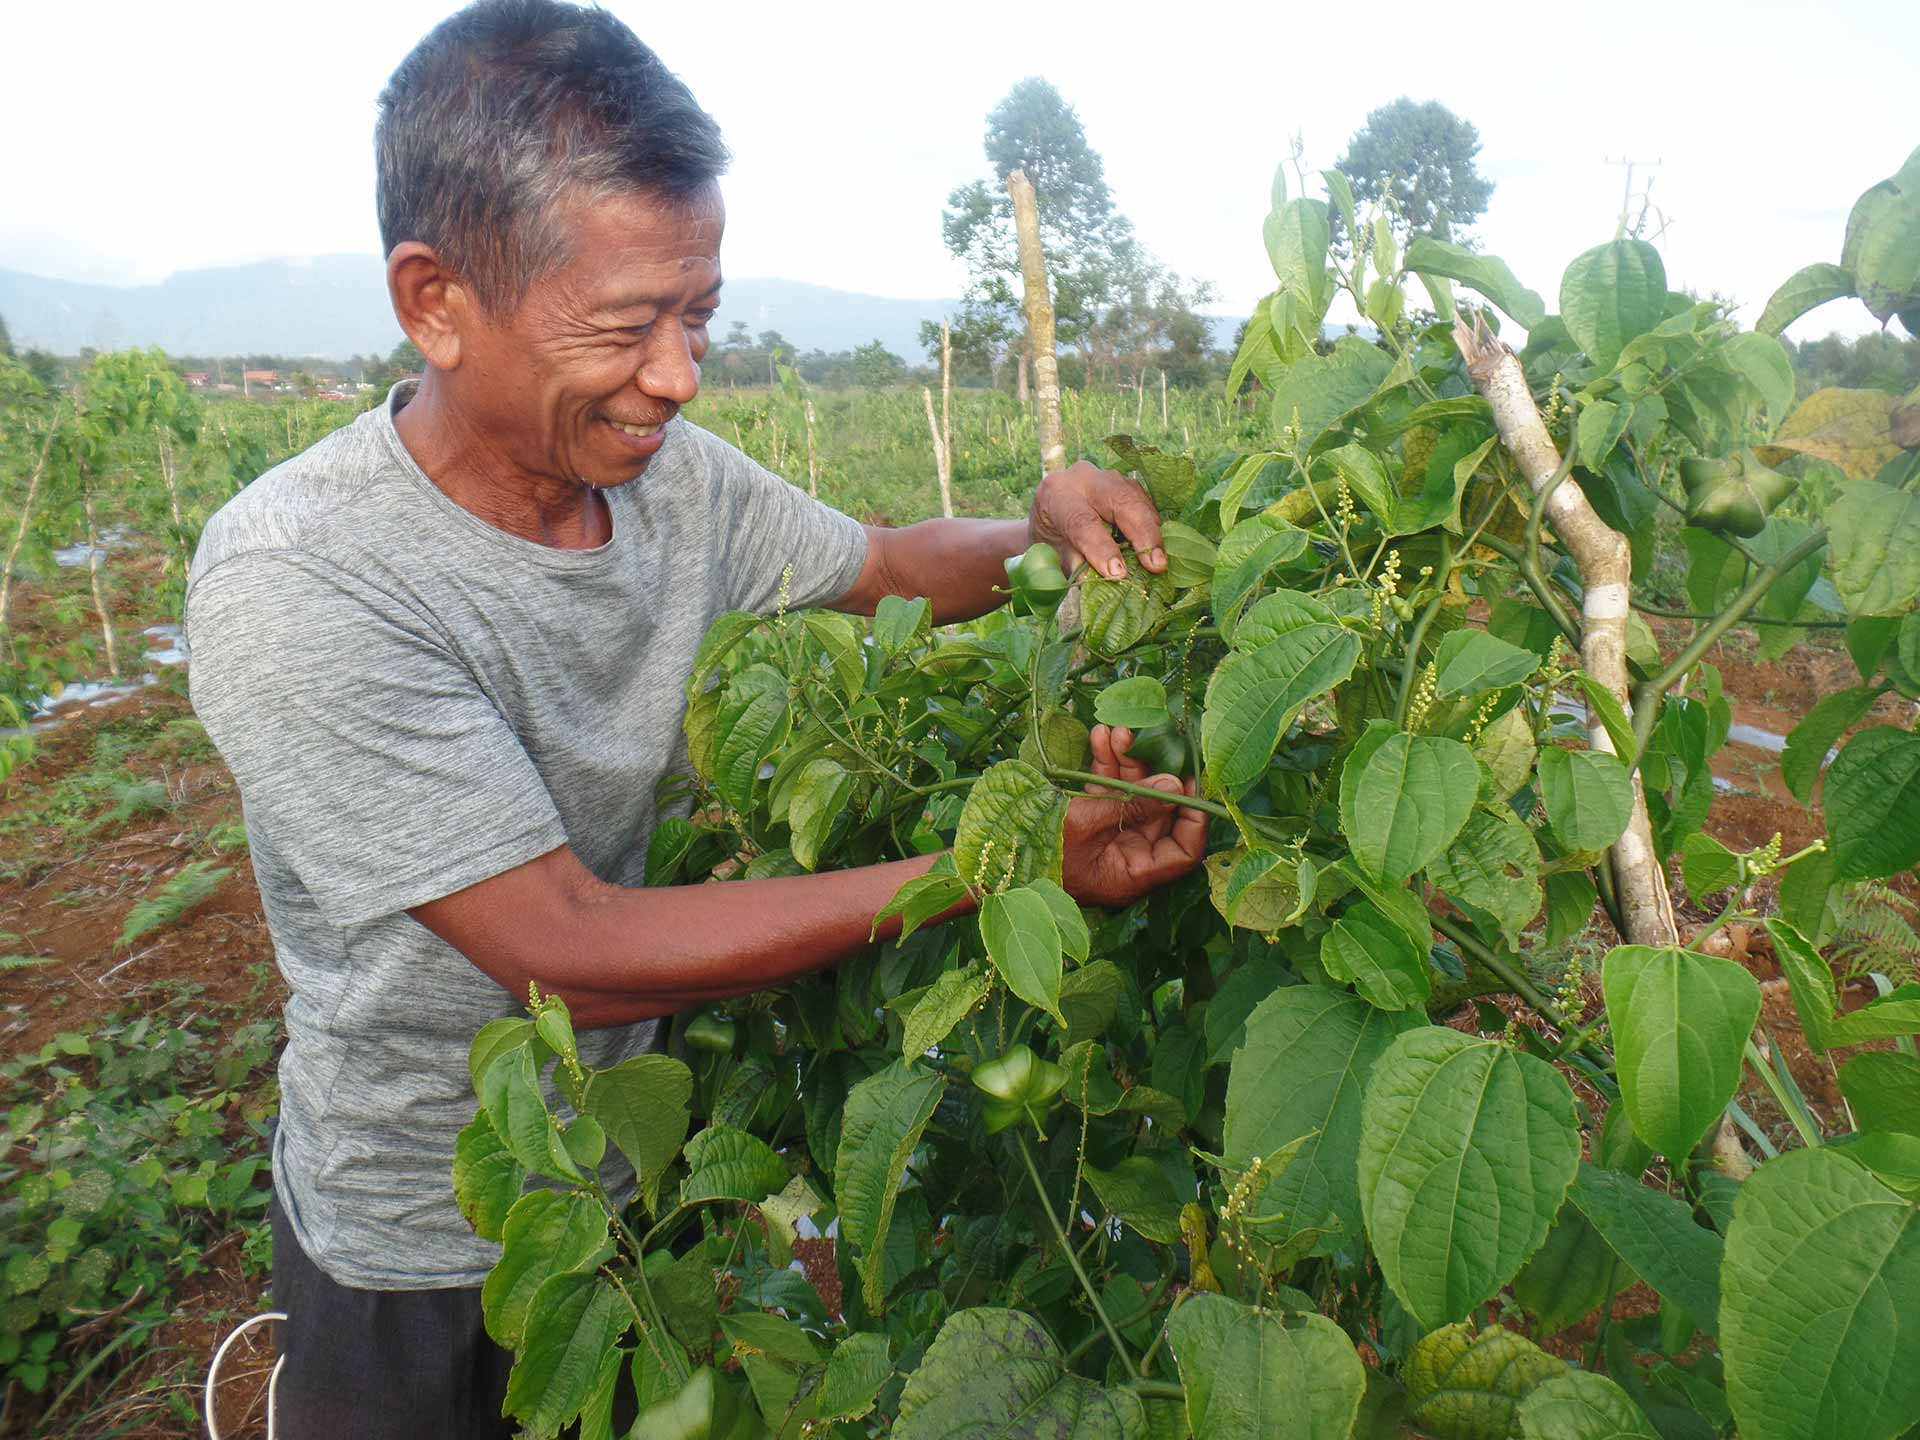 Lao farmer tending his crop